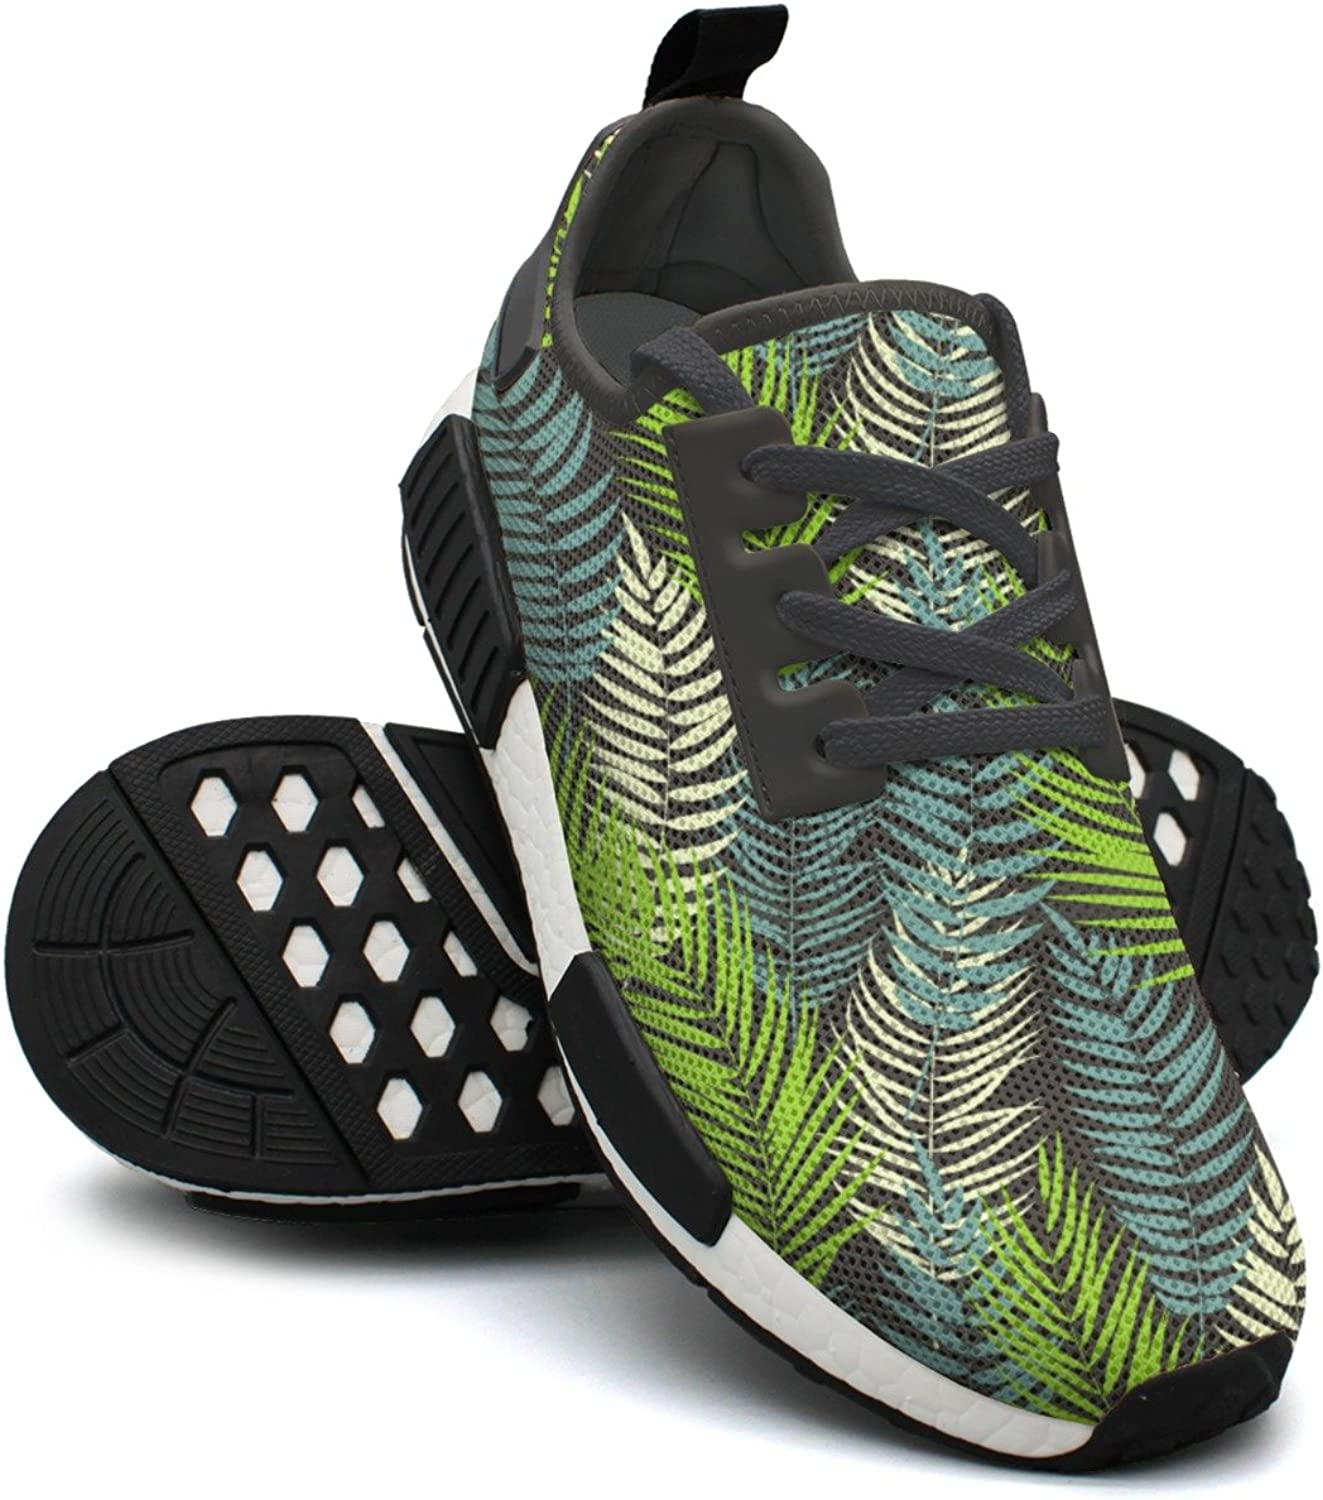 Beautifil Palm Tree Leaf Silhouette Ladies Running shoes Nmd Sport Tennis shoes